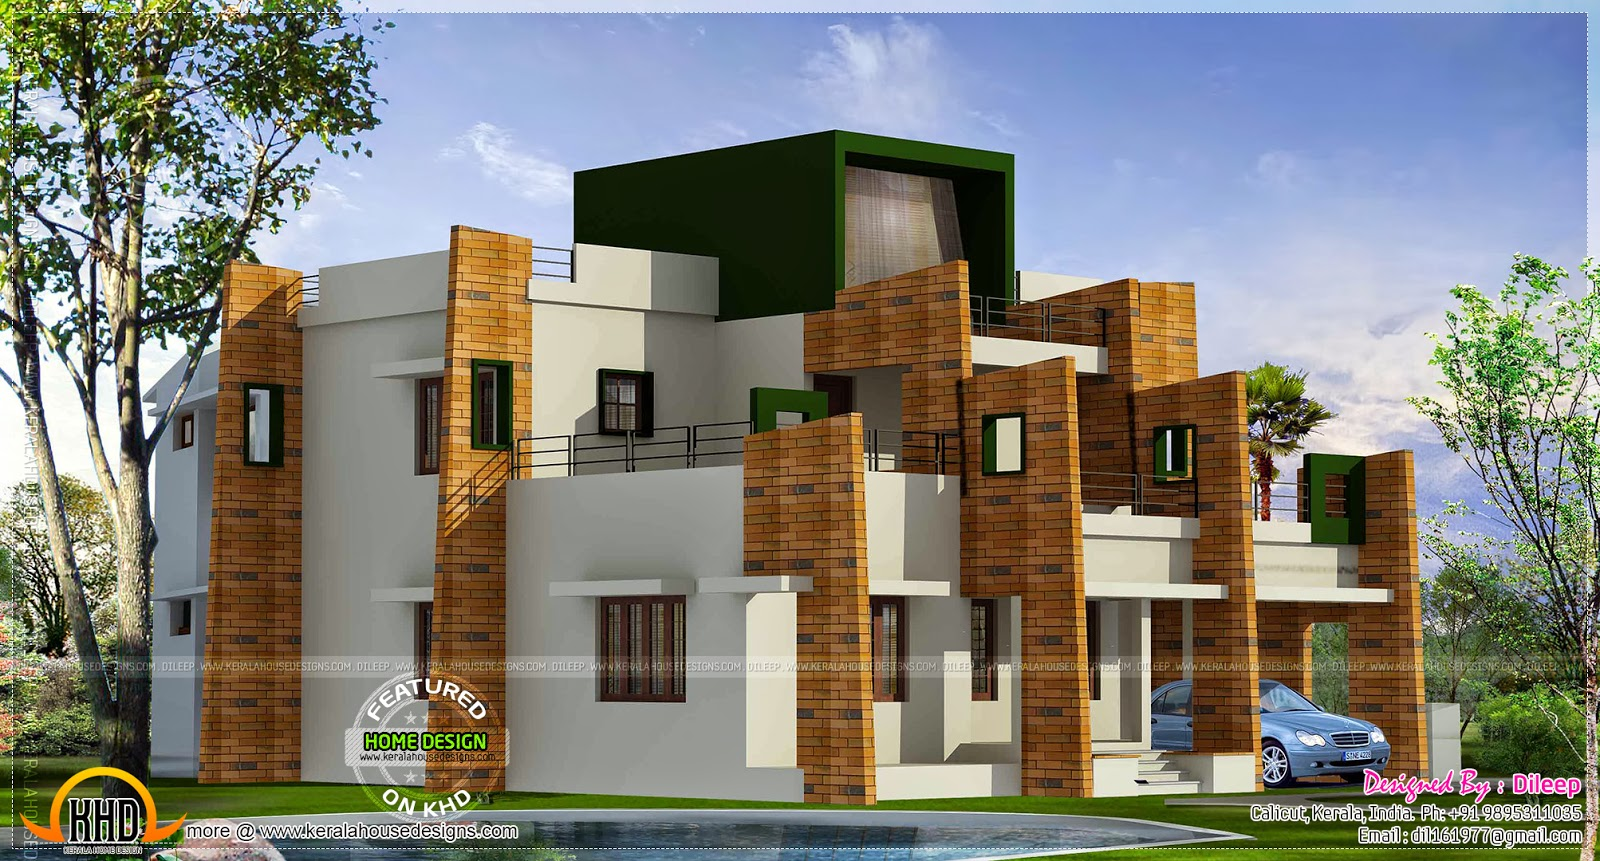 Contemporary model home kerala home design and floor plans for Contemporary model homes